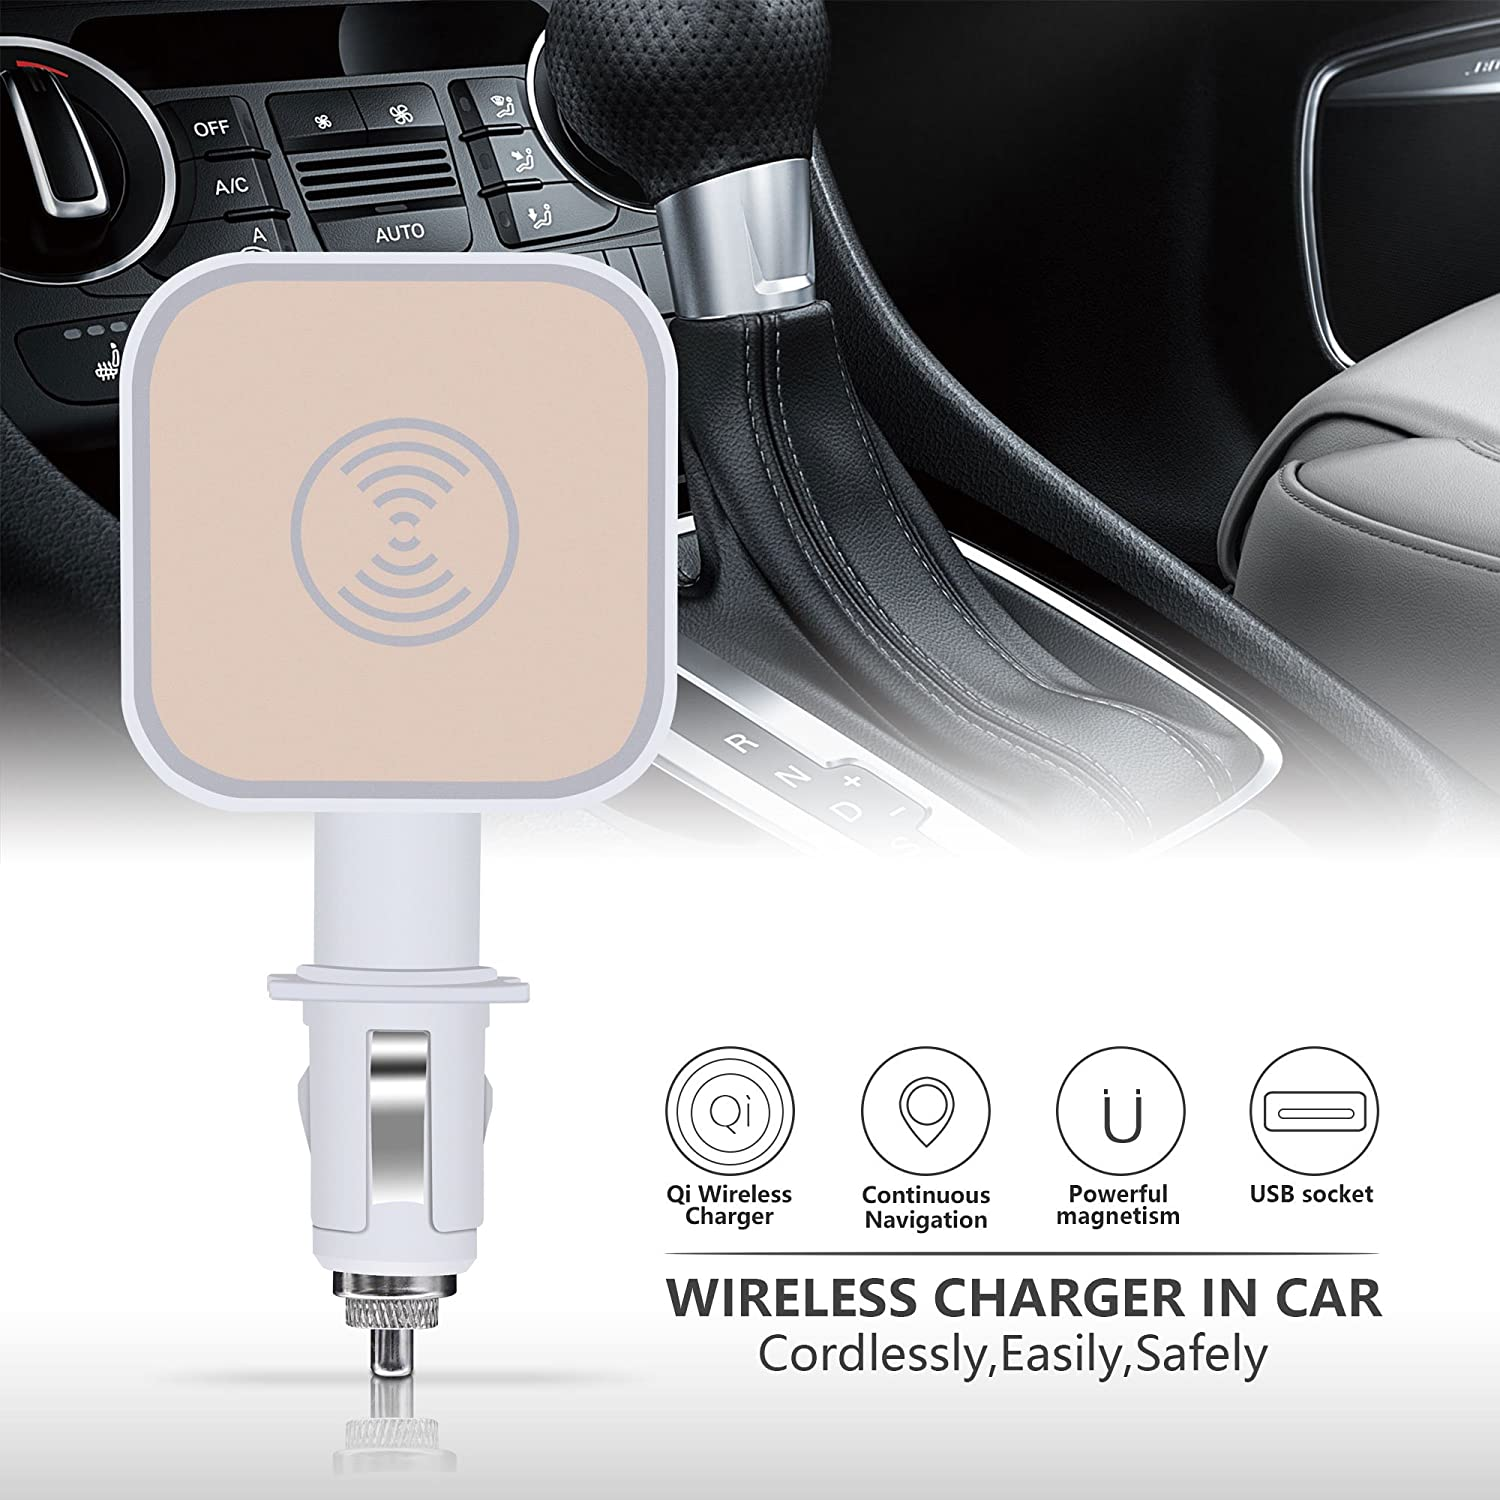 VIEE 2-in-1 QI Magnetic Wireless Charging Mount with Free Wireless Receiver Case Cover for iPhone 6//6s//7//8 Apple iPhone Wireless Car Charger Kit